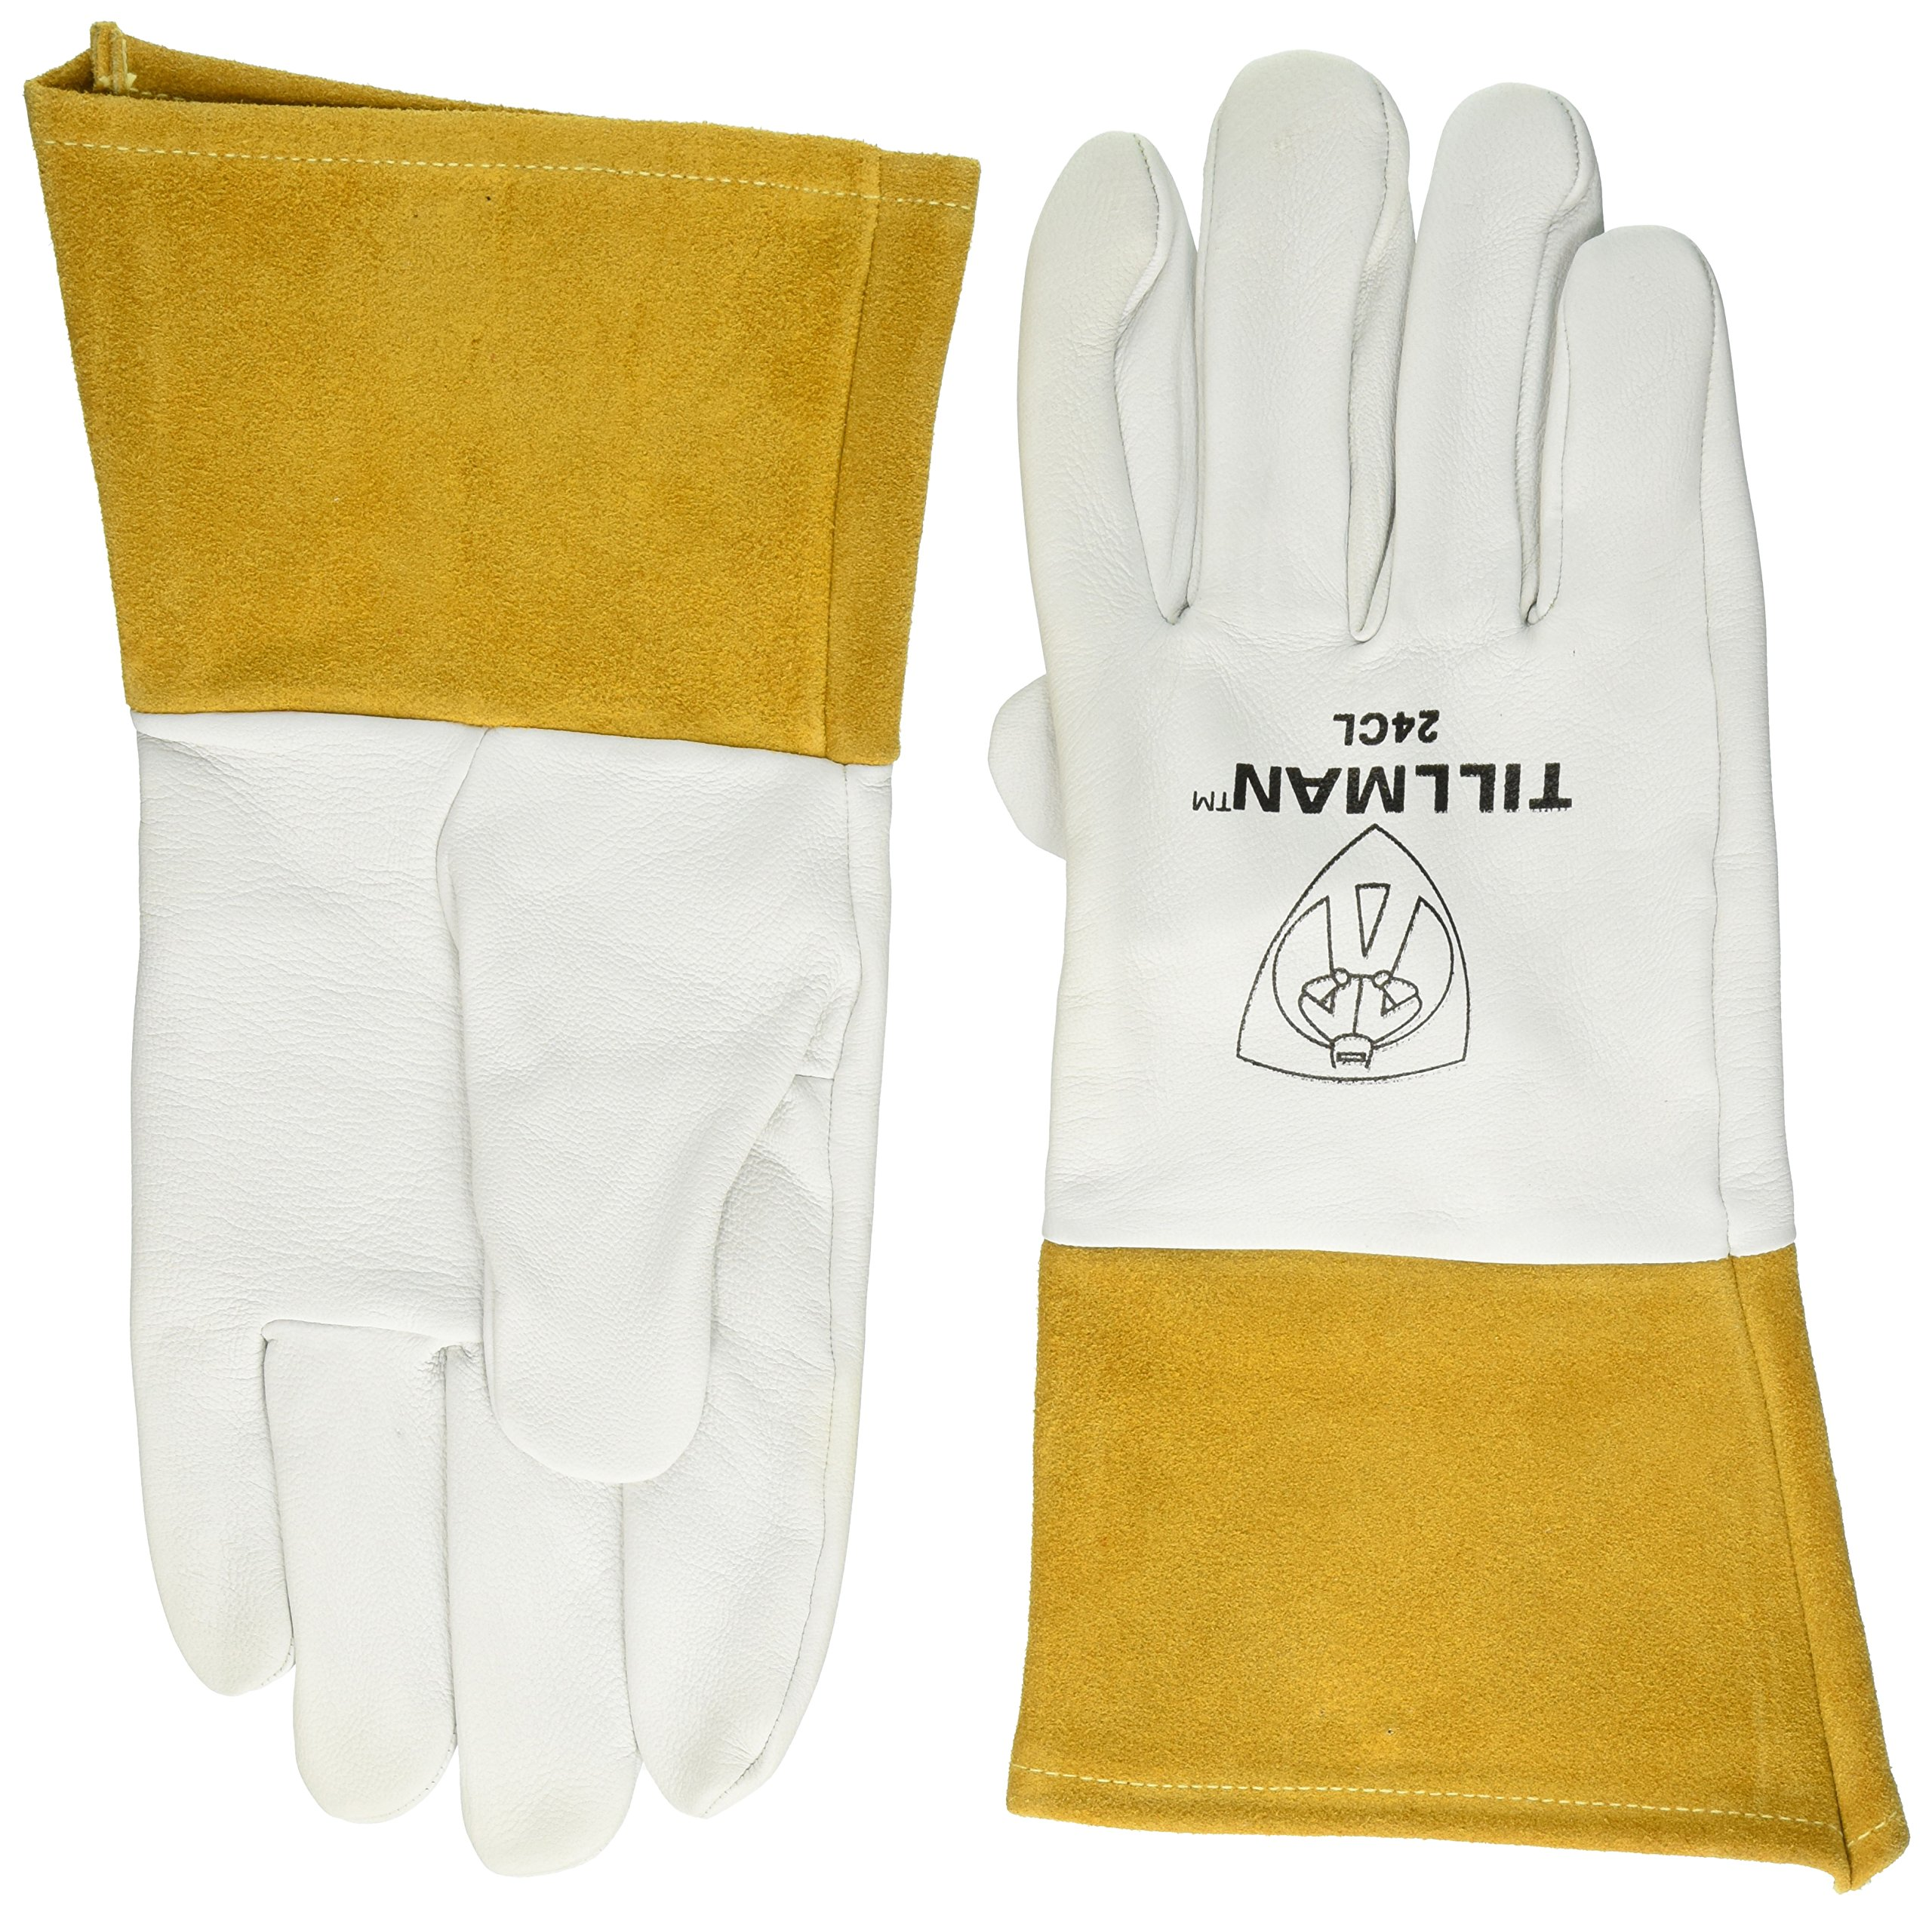 John Tillman and Co 24CL Premium Top Grain Pearl Kidskin MIG/TIG Welder's Glove with 4'' Cuff, Straight Thumb and Kevlar Thread, Large